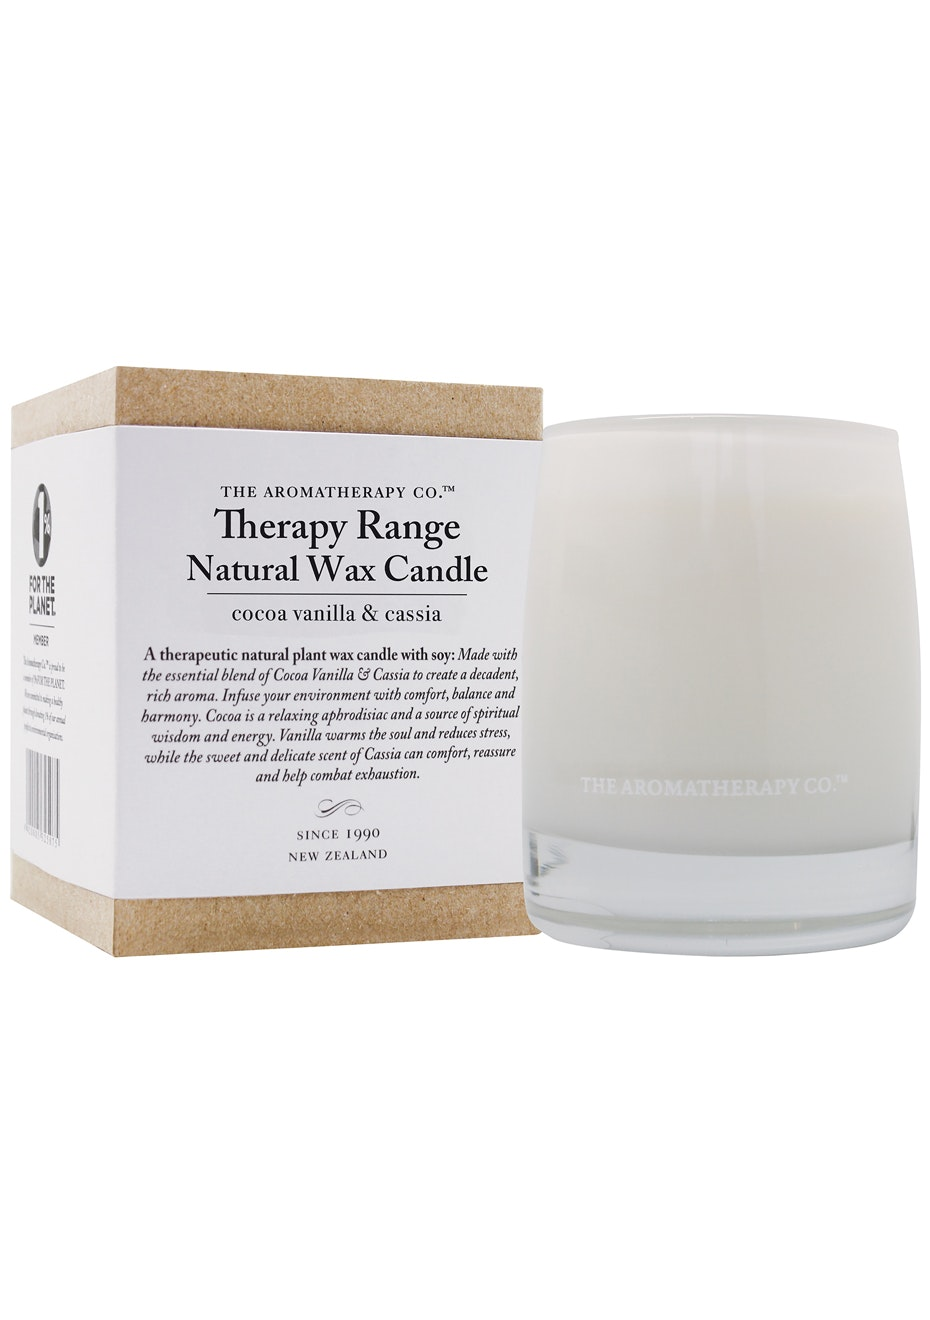 The Aromatherapy Co. Therapy Candle - Cocoa Vanilla & Cassia